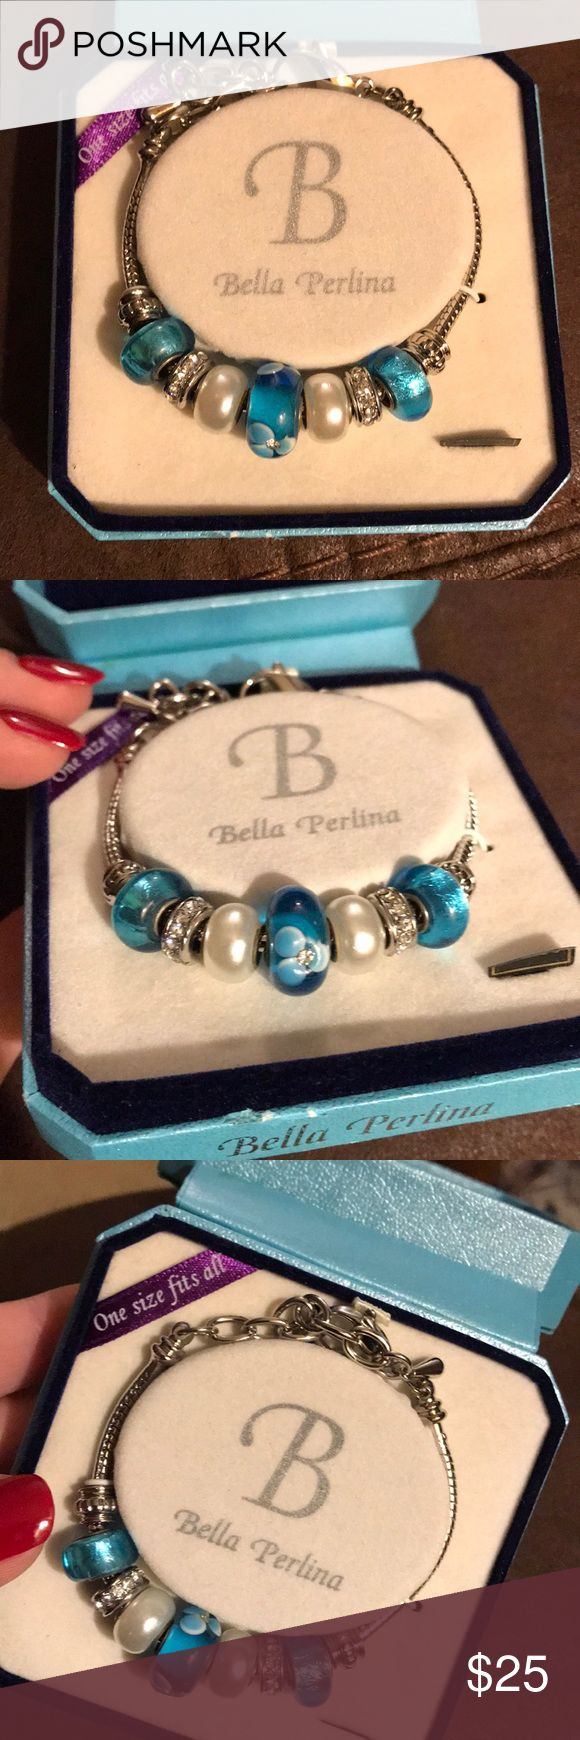 Beautiful blue bracelet Brand new still in the box. Purchased in the Caribbean. Got this as a Christmas present from my ex fiancée parents. Haven't been able to bring myself to wear it. I think it's time it finally gets the home it's always deserved! It truly is a beautiful, well made bracelet! bella perlina Jewelry Bracelets